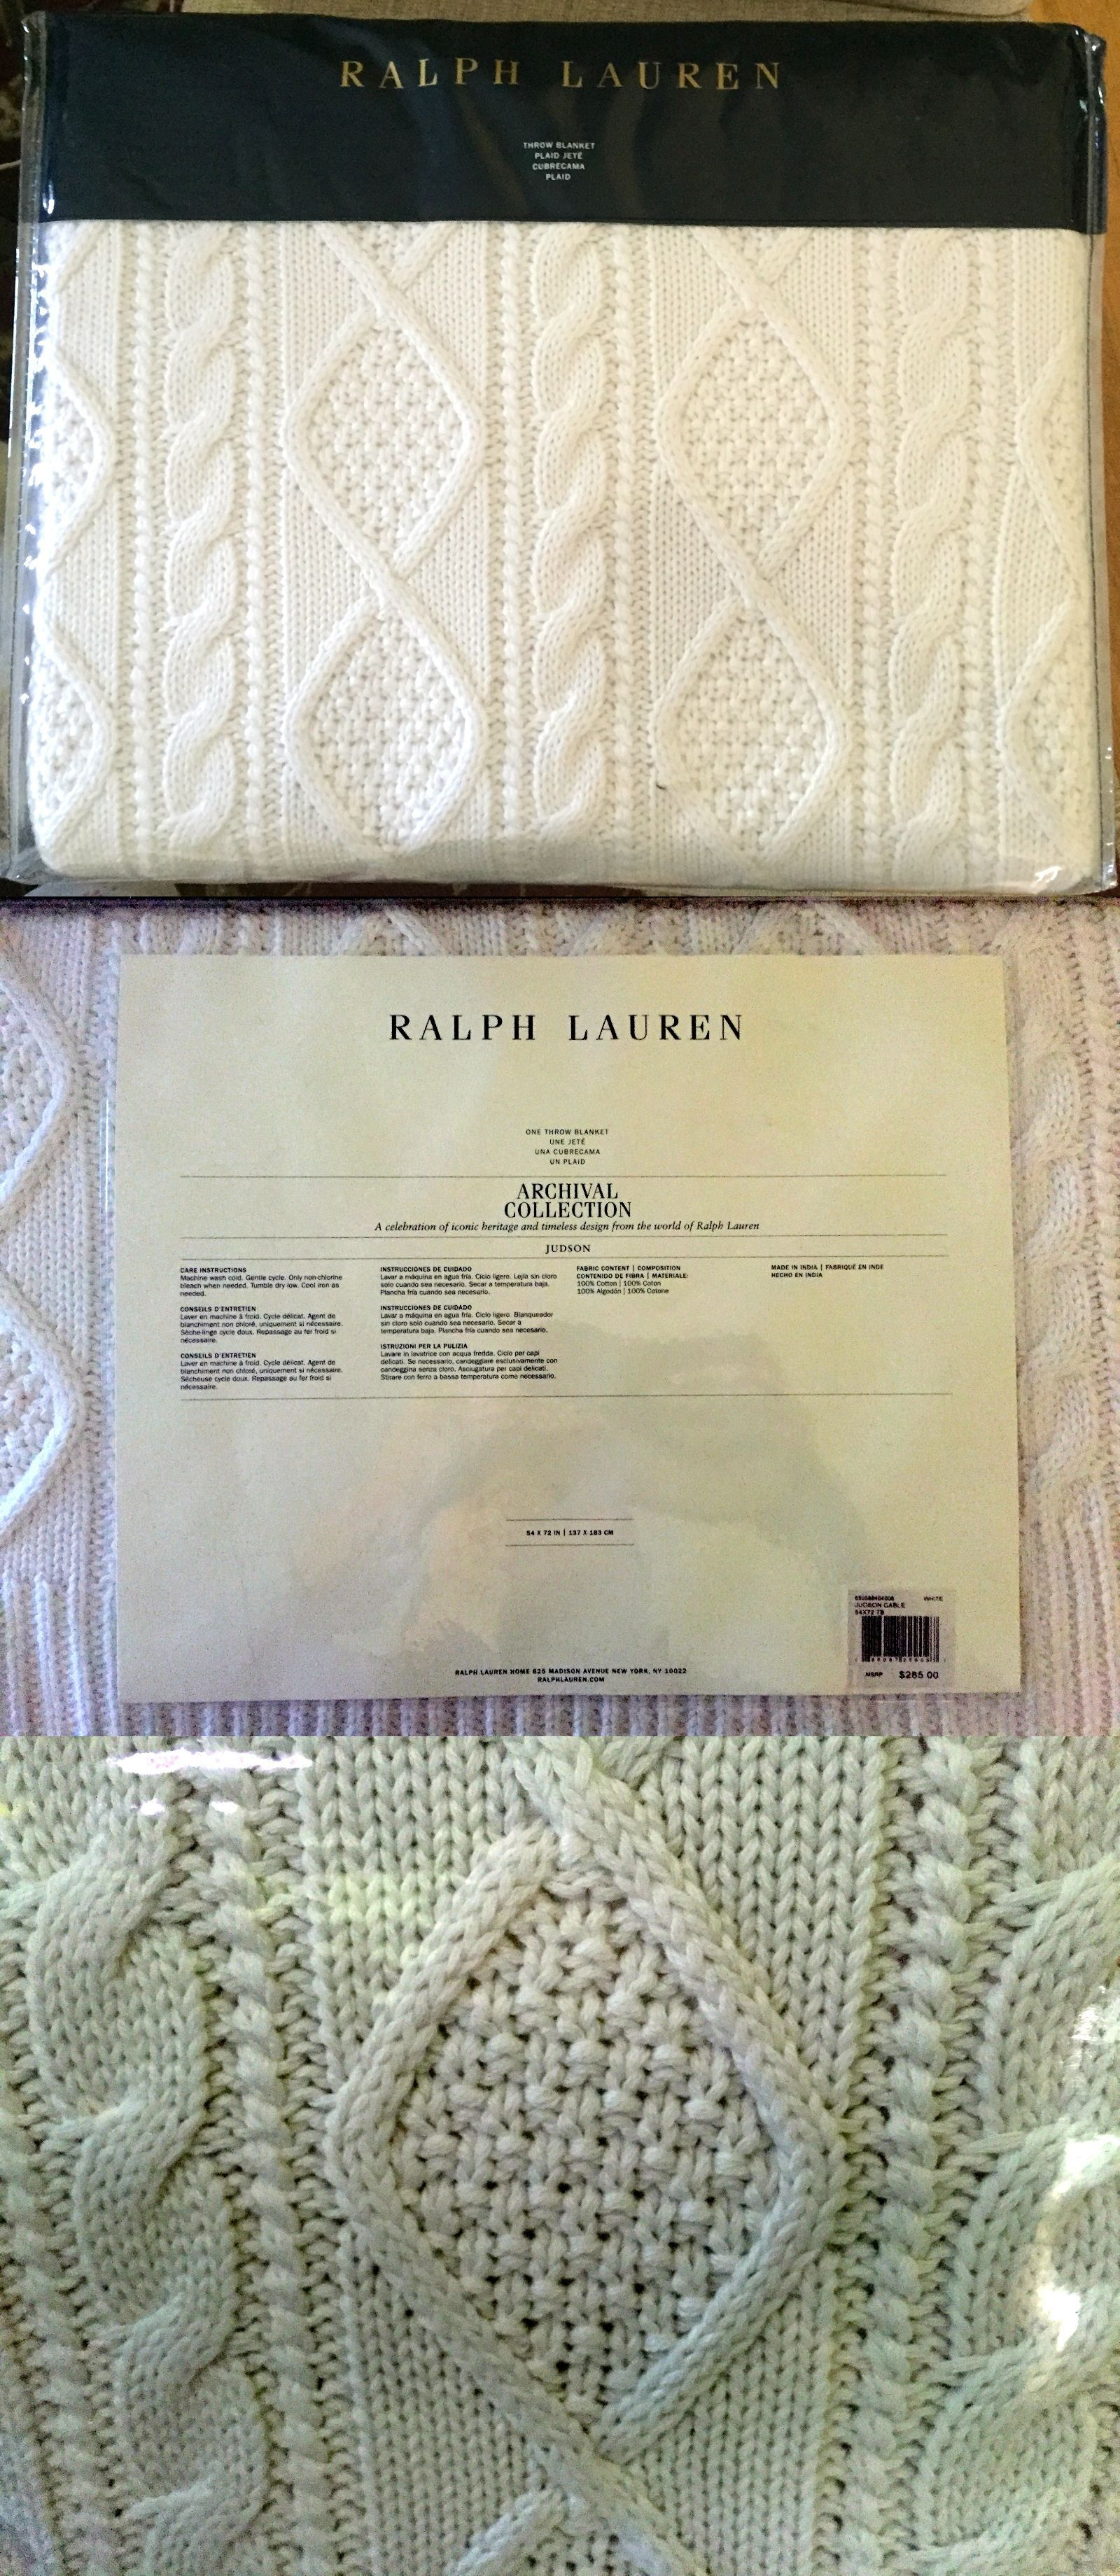 Blankets and throws new ralph lauren home archival